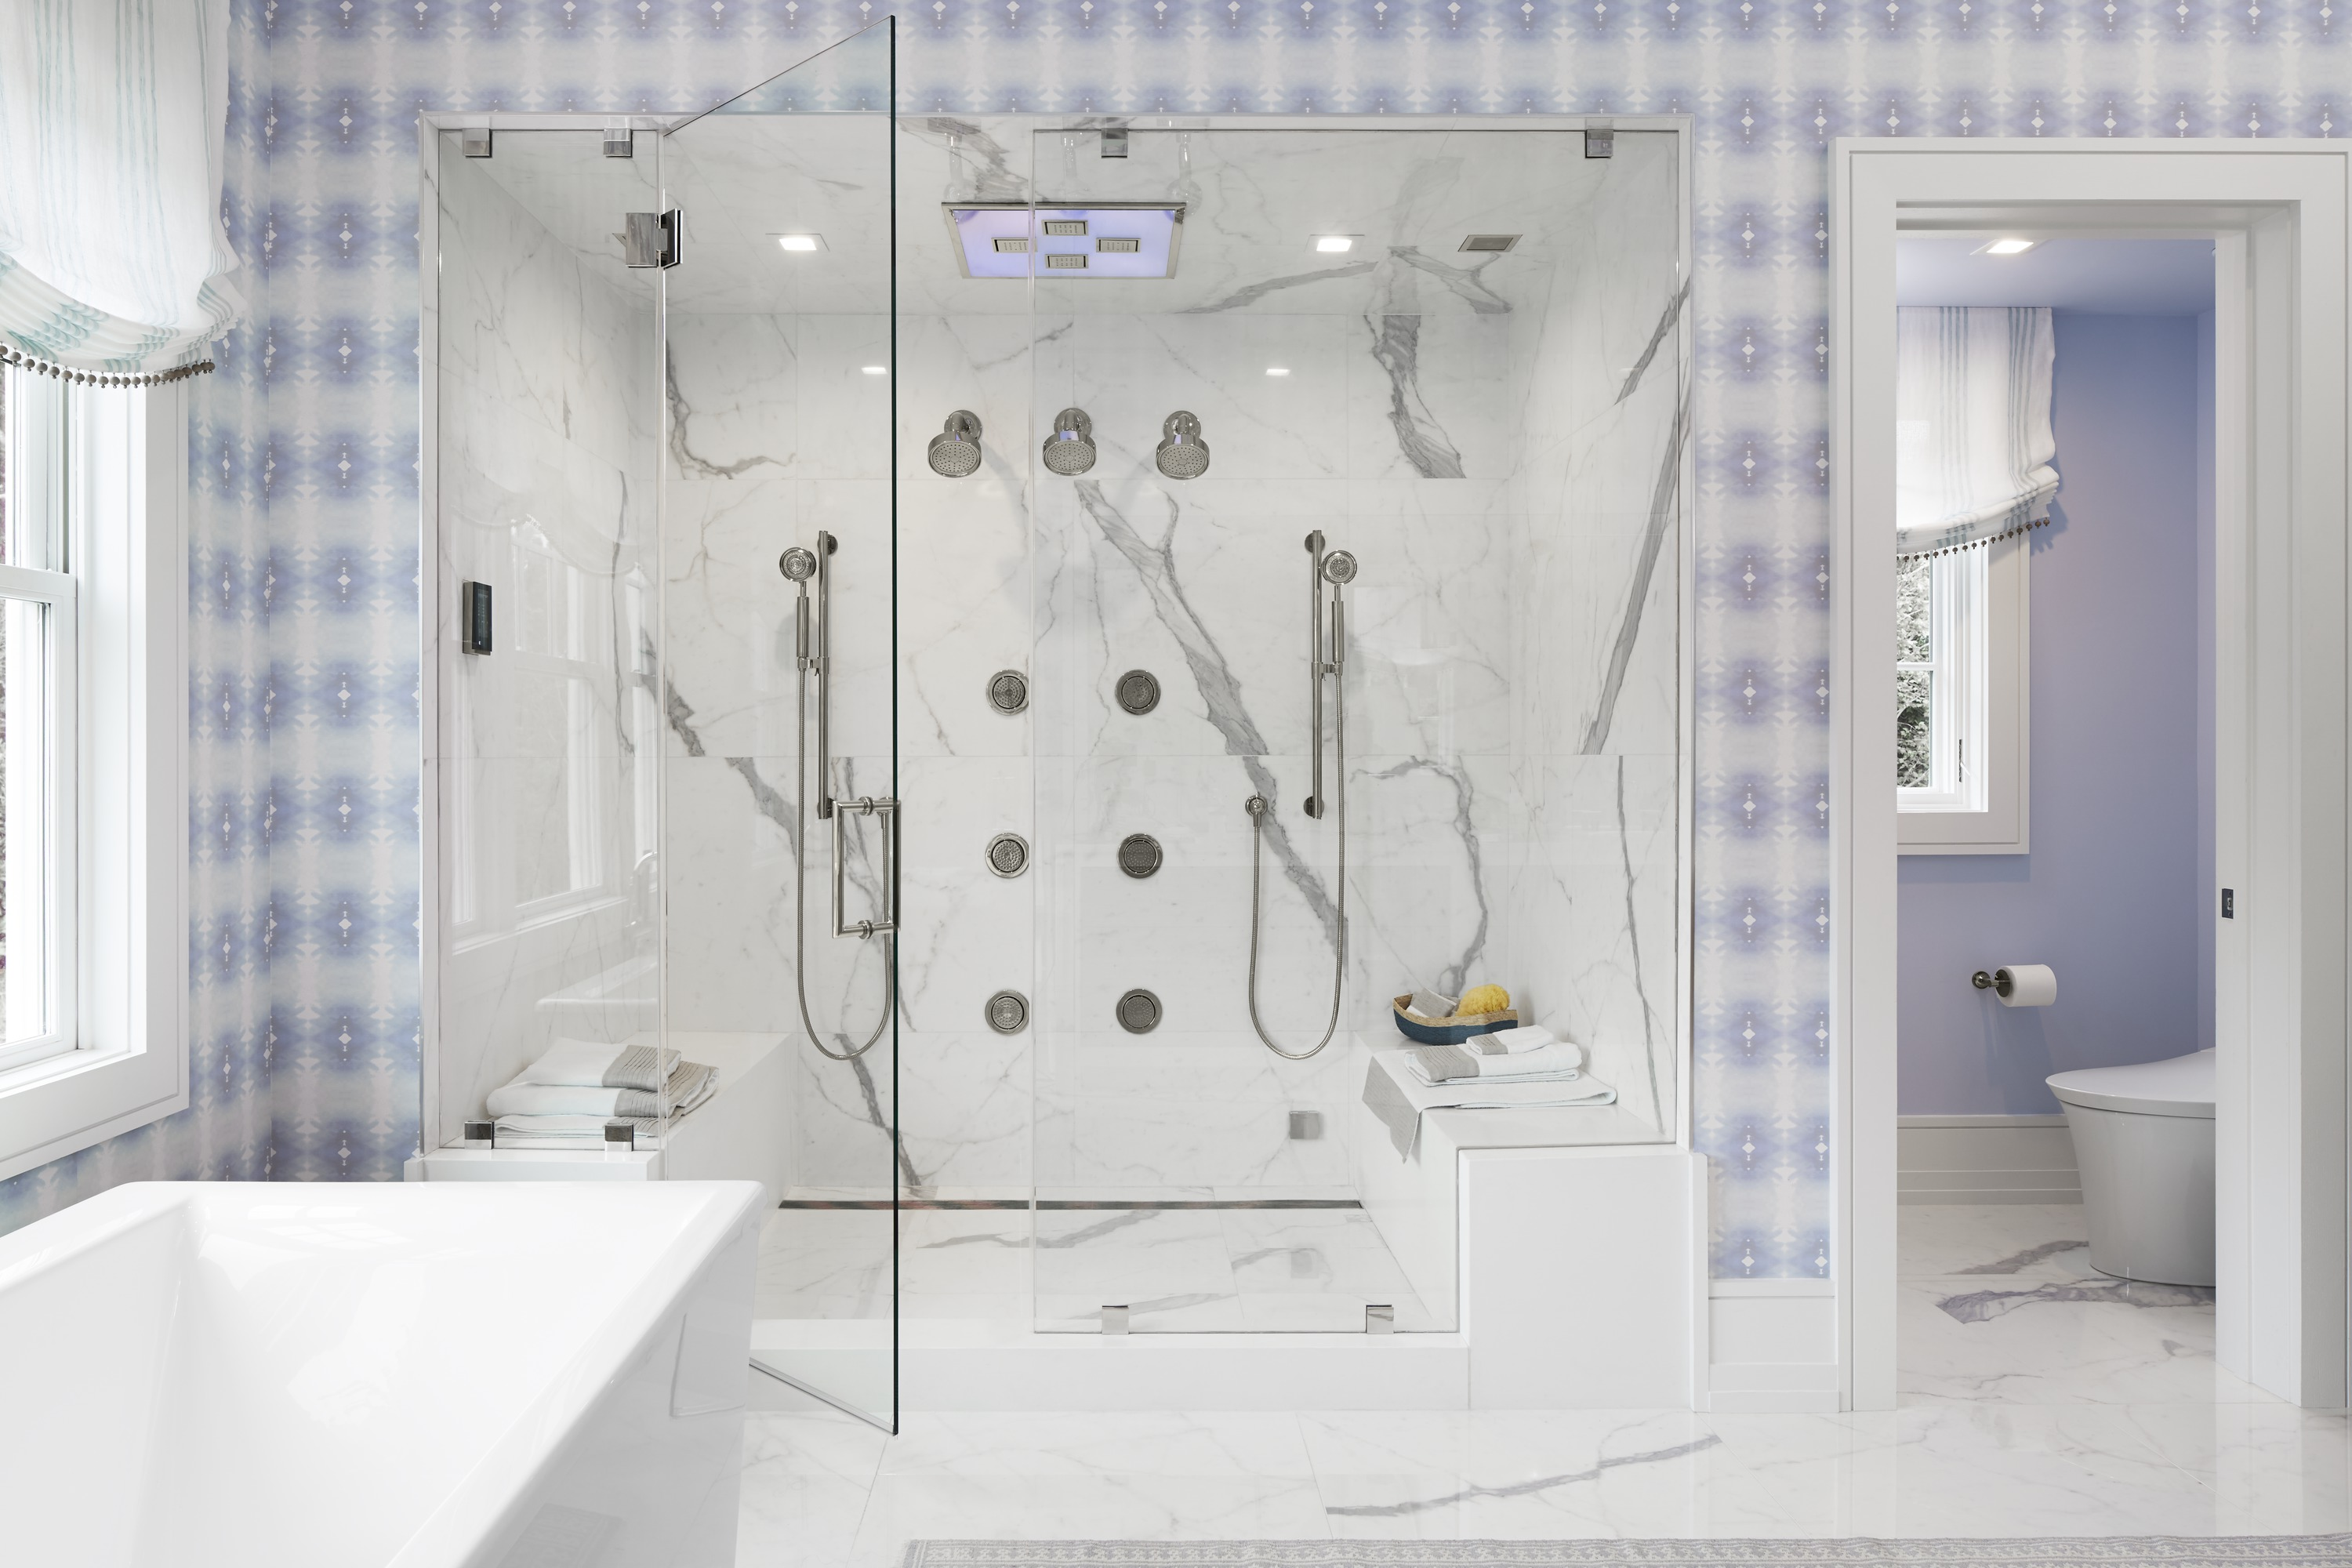 WaterTile Ambient Rain® Shower Panel     Purist Showerhead     WaterTile Body Spray     DTV+     Veil® Intelligent Toilet     Delivering highly personalized experiences, the two-person digital shower features a variety of shower sprays, including an overhead shower panel that blends soothing color therapy with a rain shower.